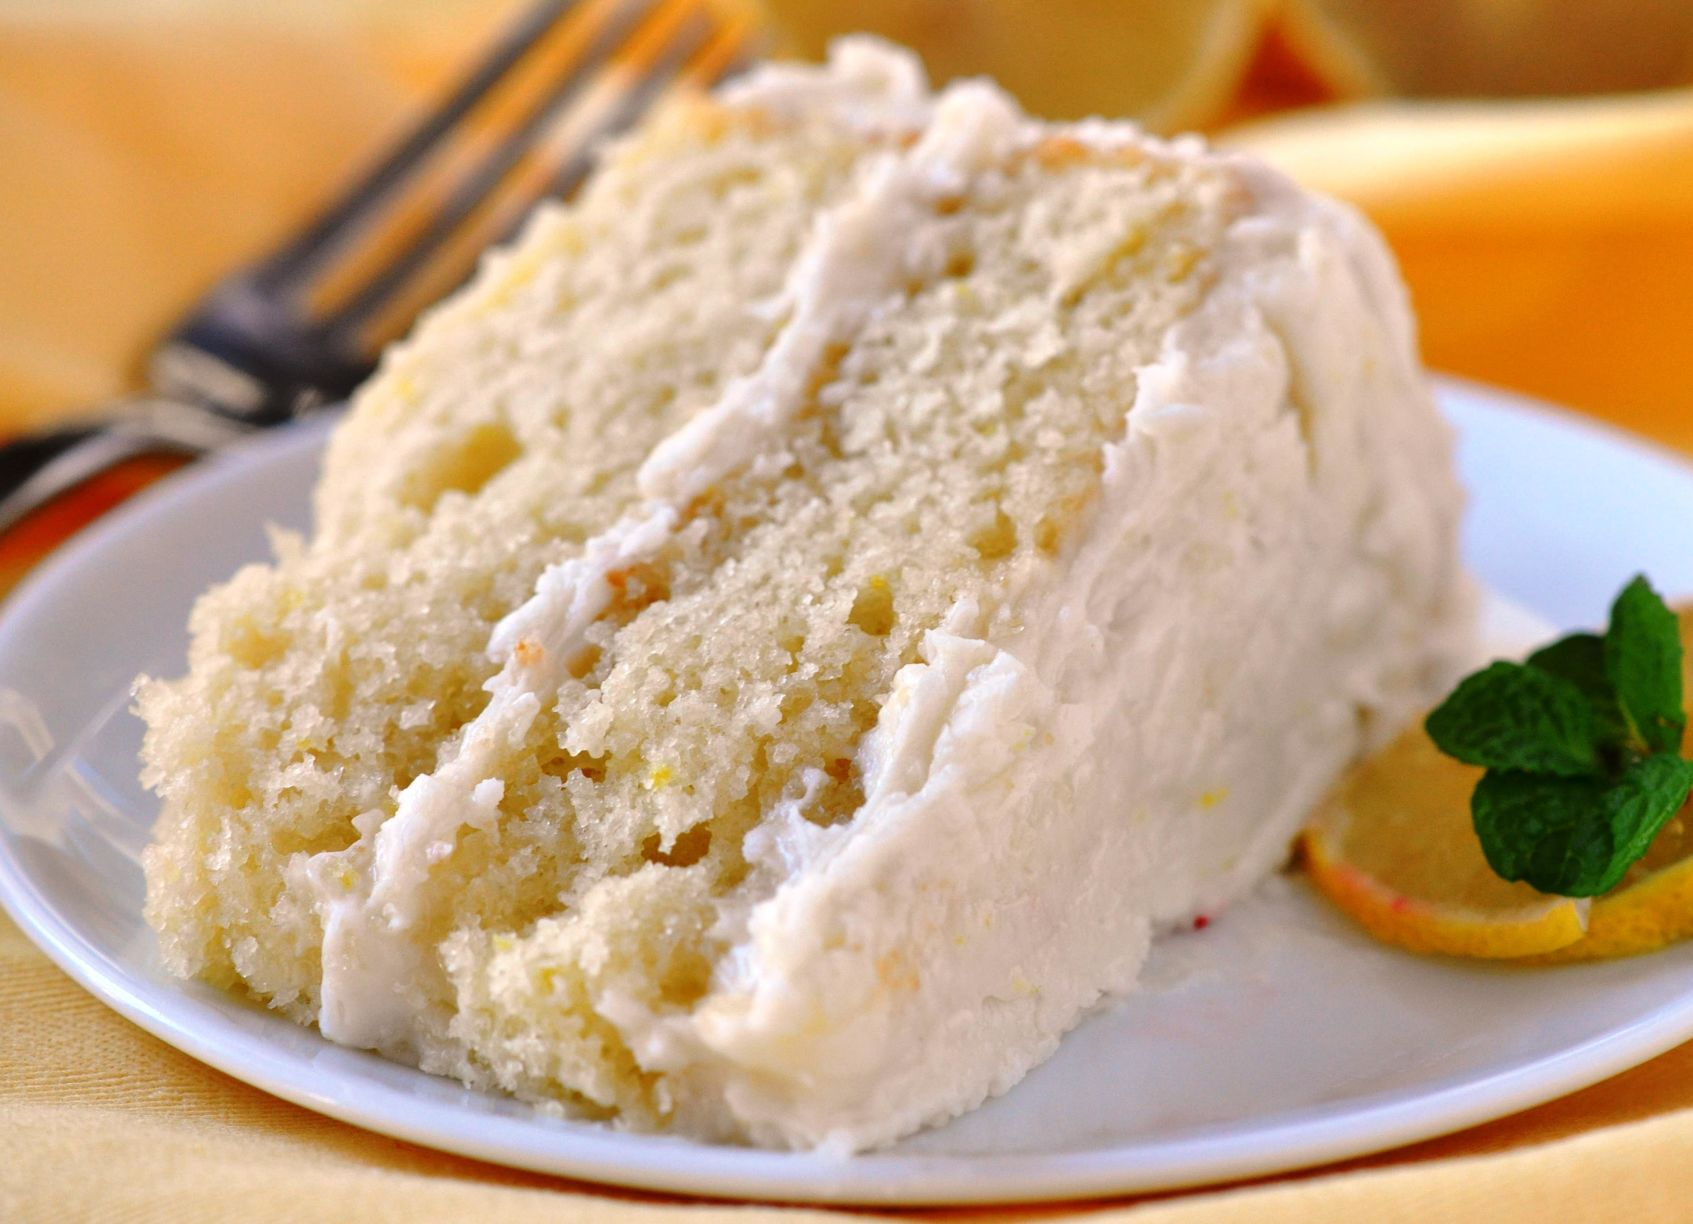 Holly Clegg's Well Done: This Lemonade Cake will quench your sweet tooth